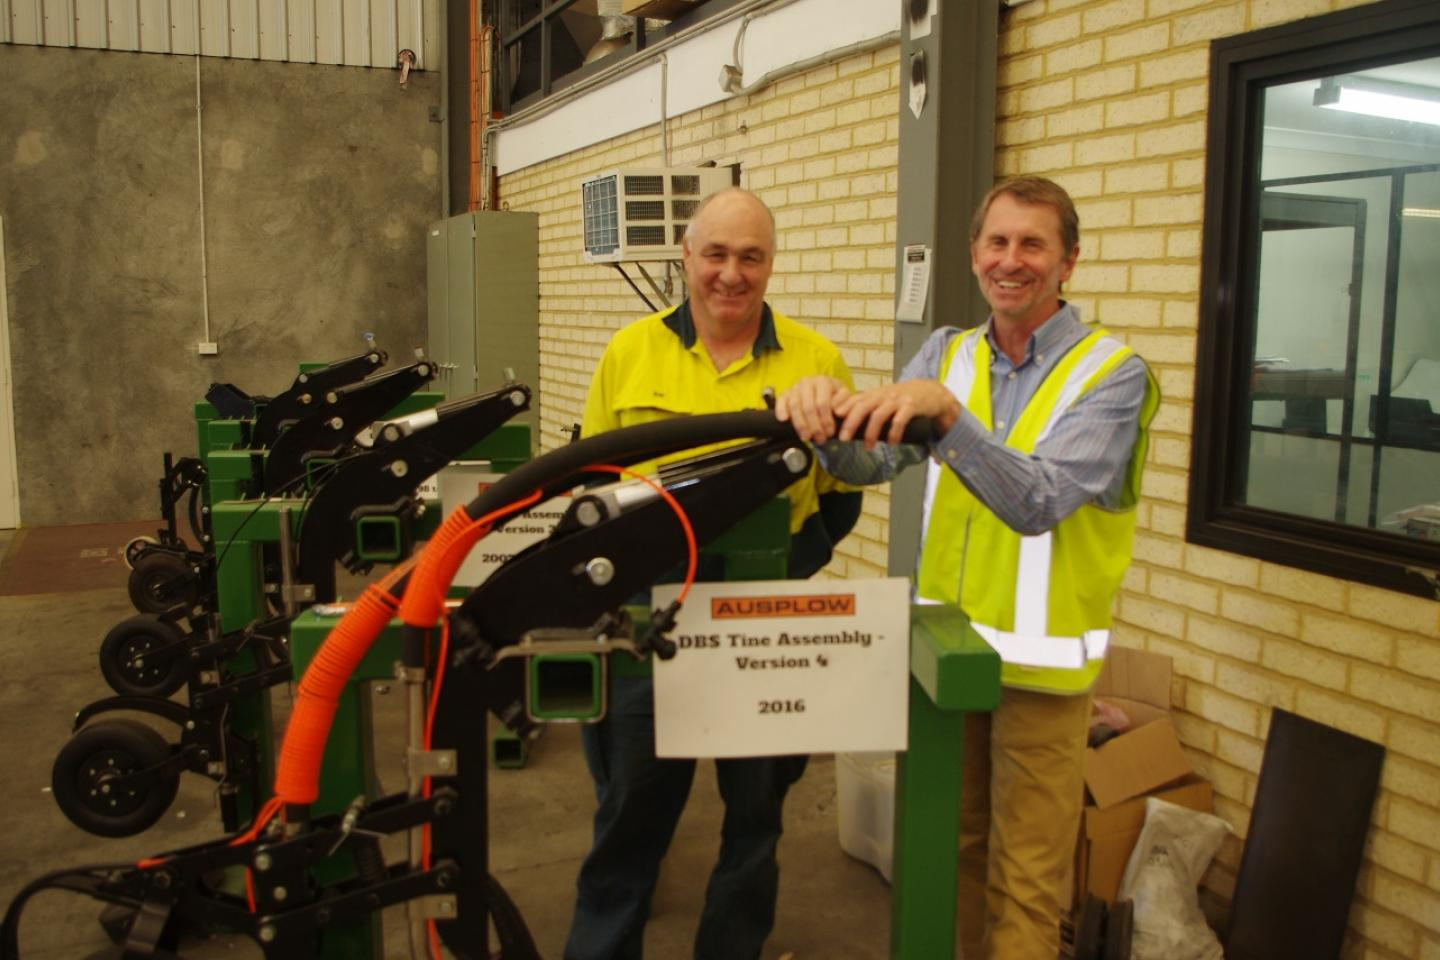 Service manager Ray Beecham (left) and sales and marketing manager Chris Blight have played pivotal roles in the development of the DBS module over the years.